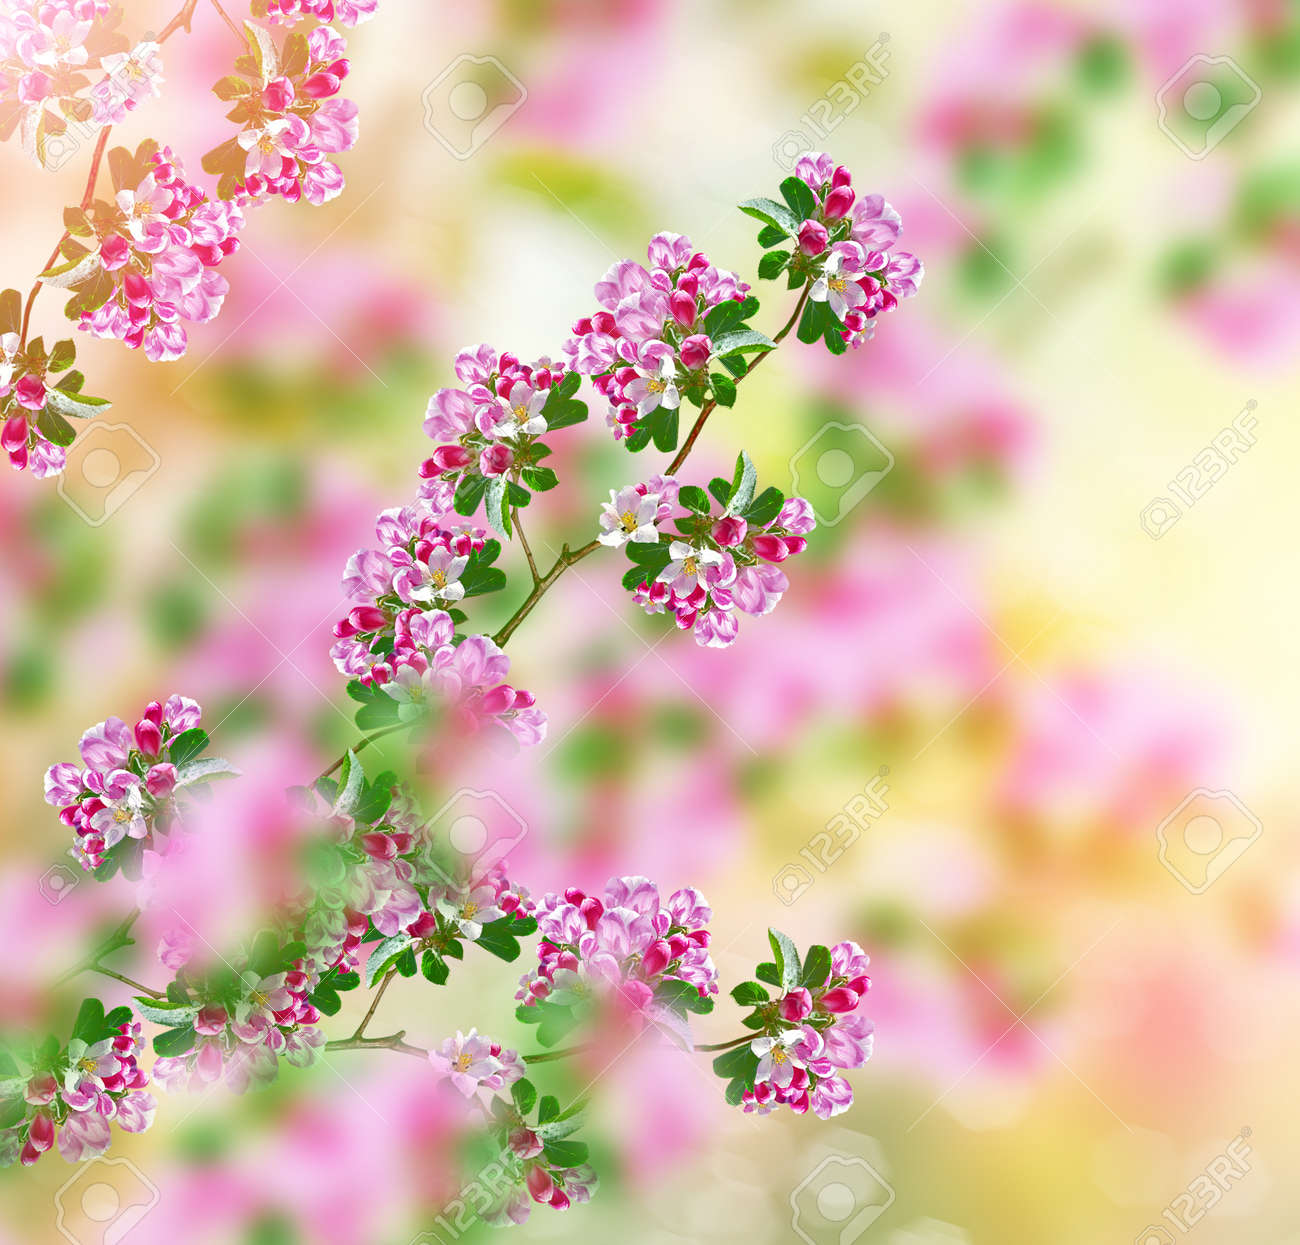 Blossoming Branche Pomme Lumineux Fleurs Printanieres Colorees